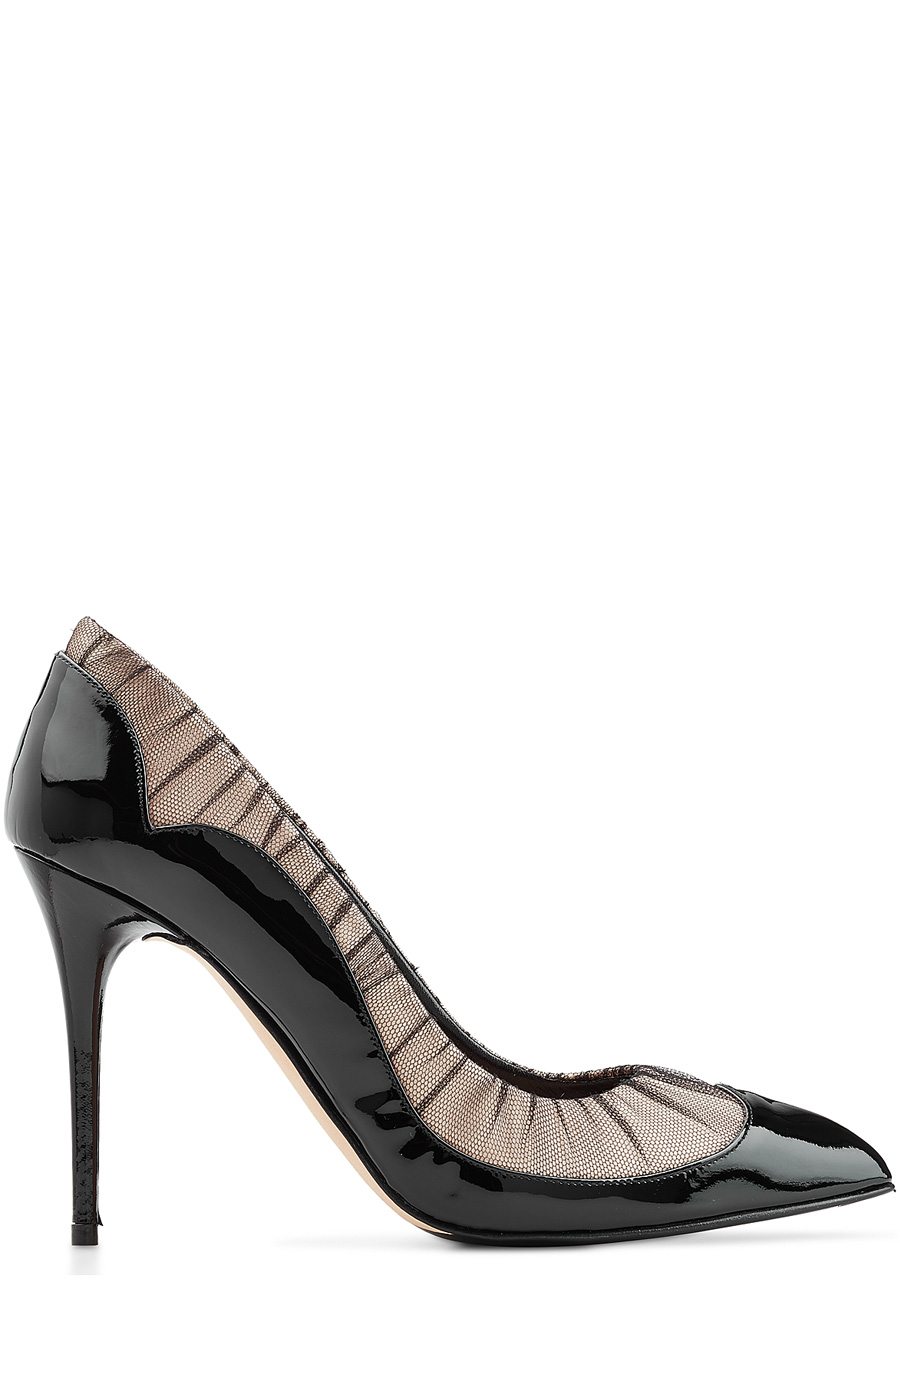 Alexander Mcqueen Patent Leather Pumps With Mesh In Black